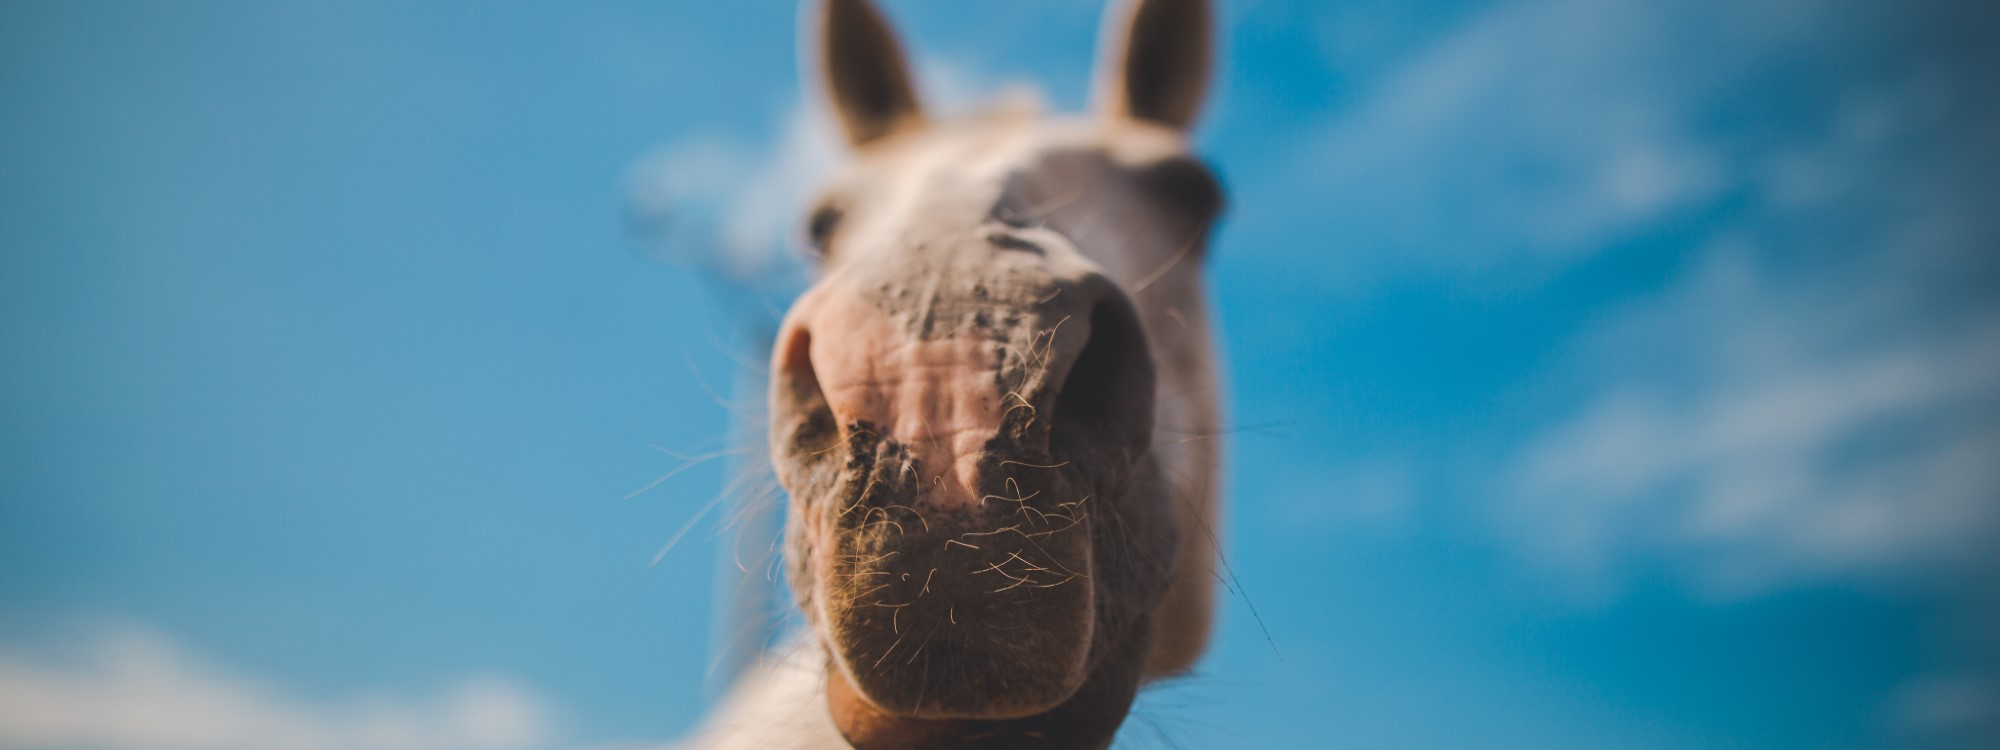 equine social media huufe app